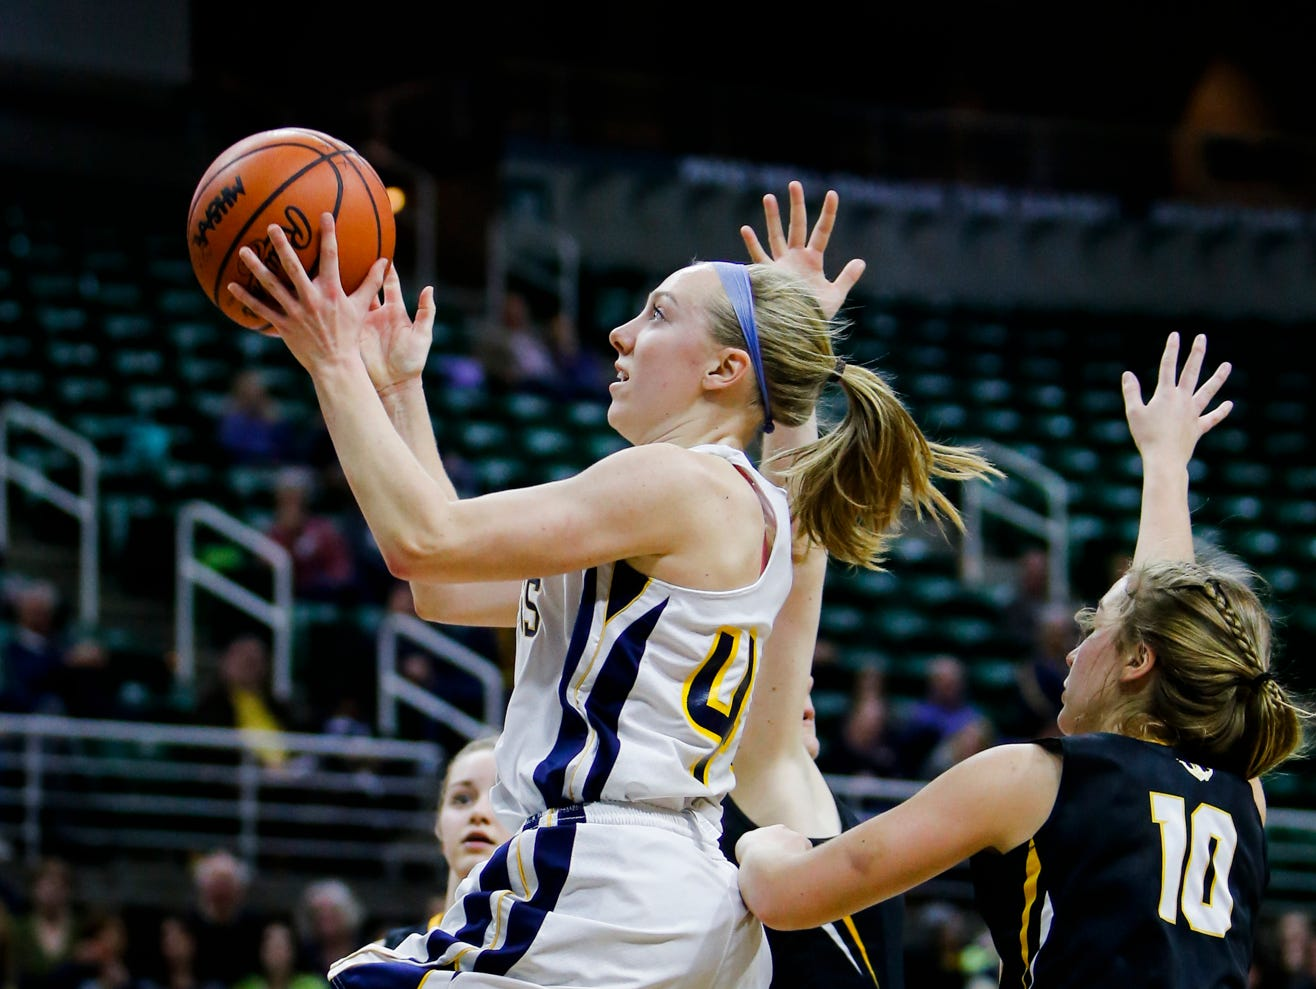 P-W's Brenna Wirth connects from the paint against Maple City Glen Lake Thursday, March 16, 2017, during the Class B Semifinal at the Breslin in East Lansing. P-W won 64-51.